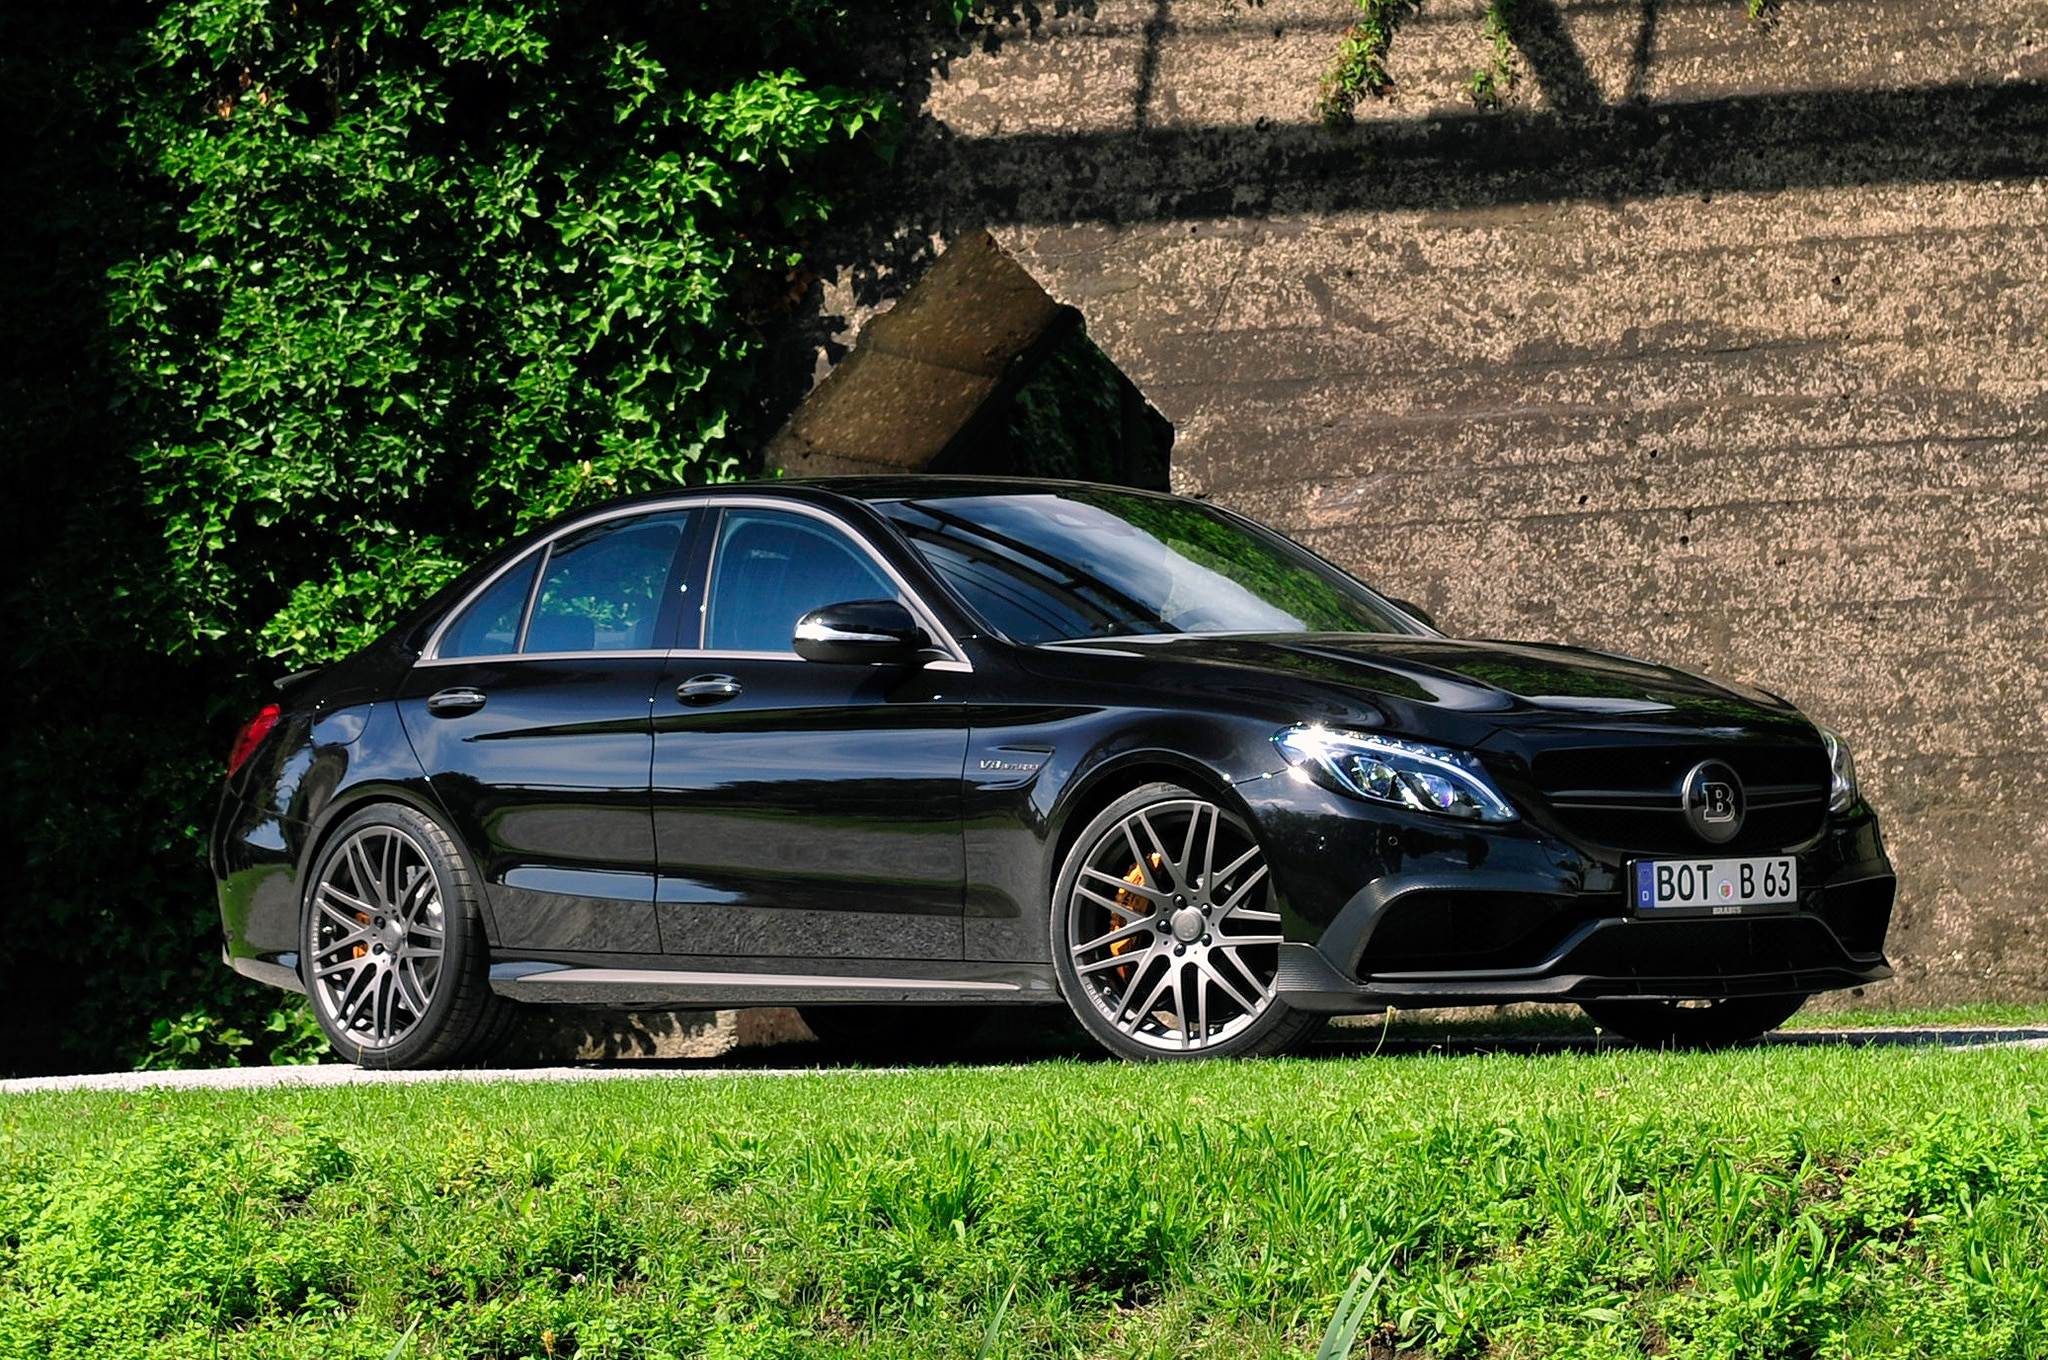 brabus cranks the mercedes amg c63 s up to 591 hp1 9